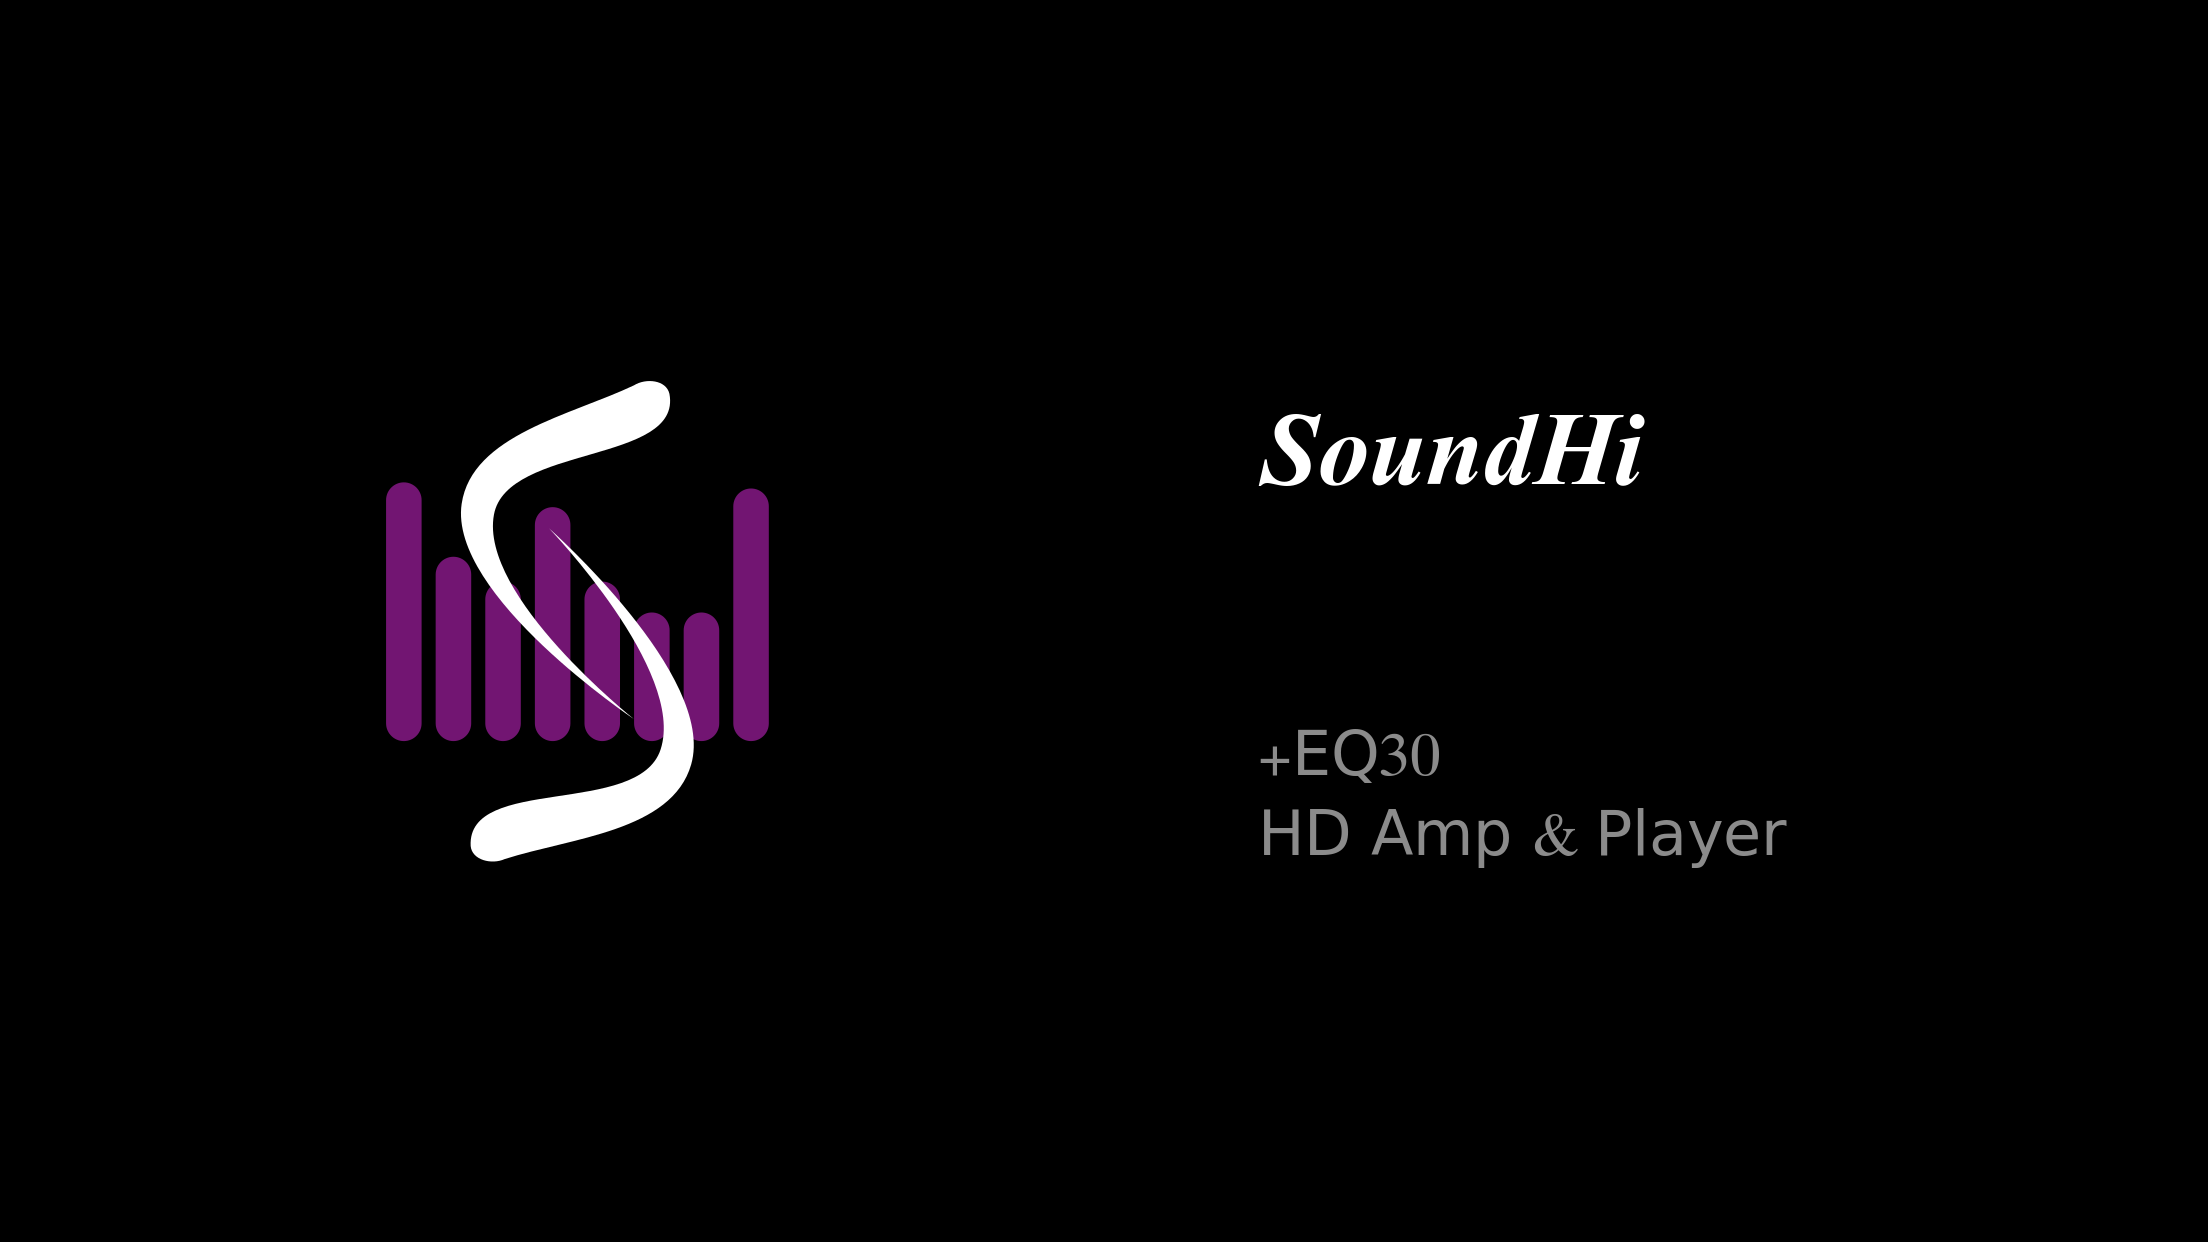 SoundHi - Selection List